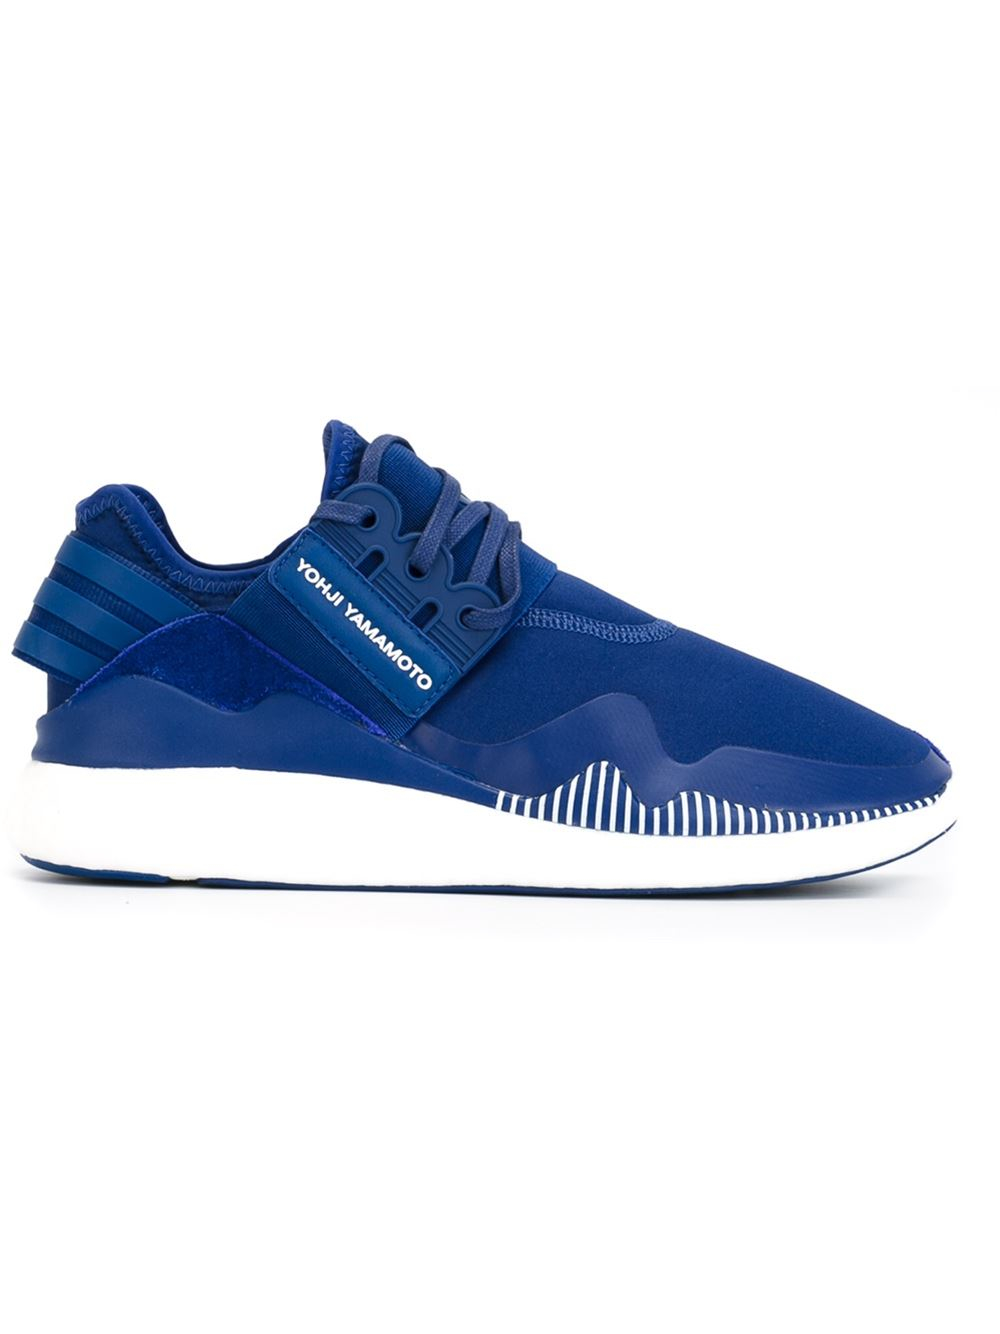 y 3 retro boost sneakers in blue for men lyst. Black Bedroom Furniture Sets. Home Design Ideas